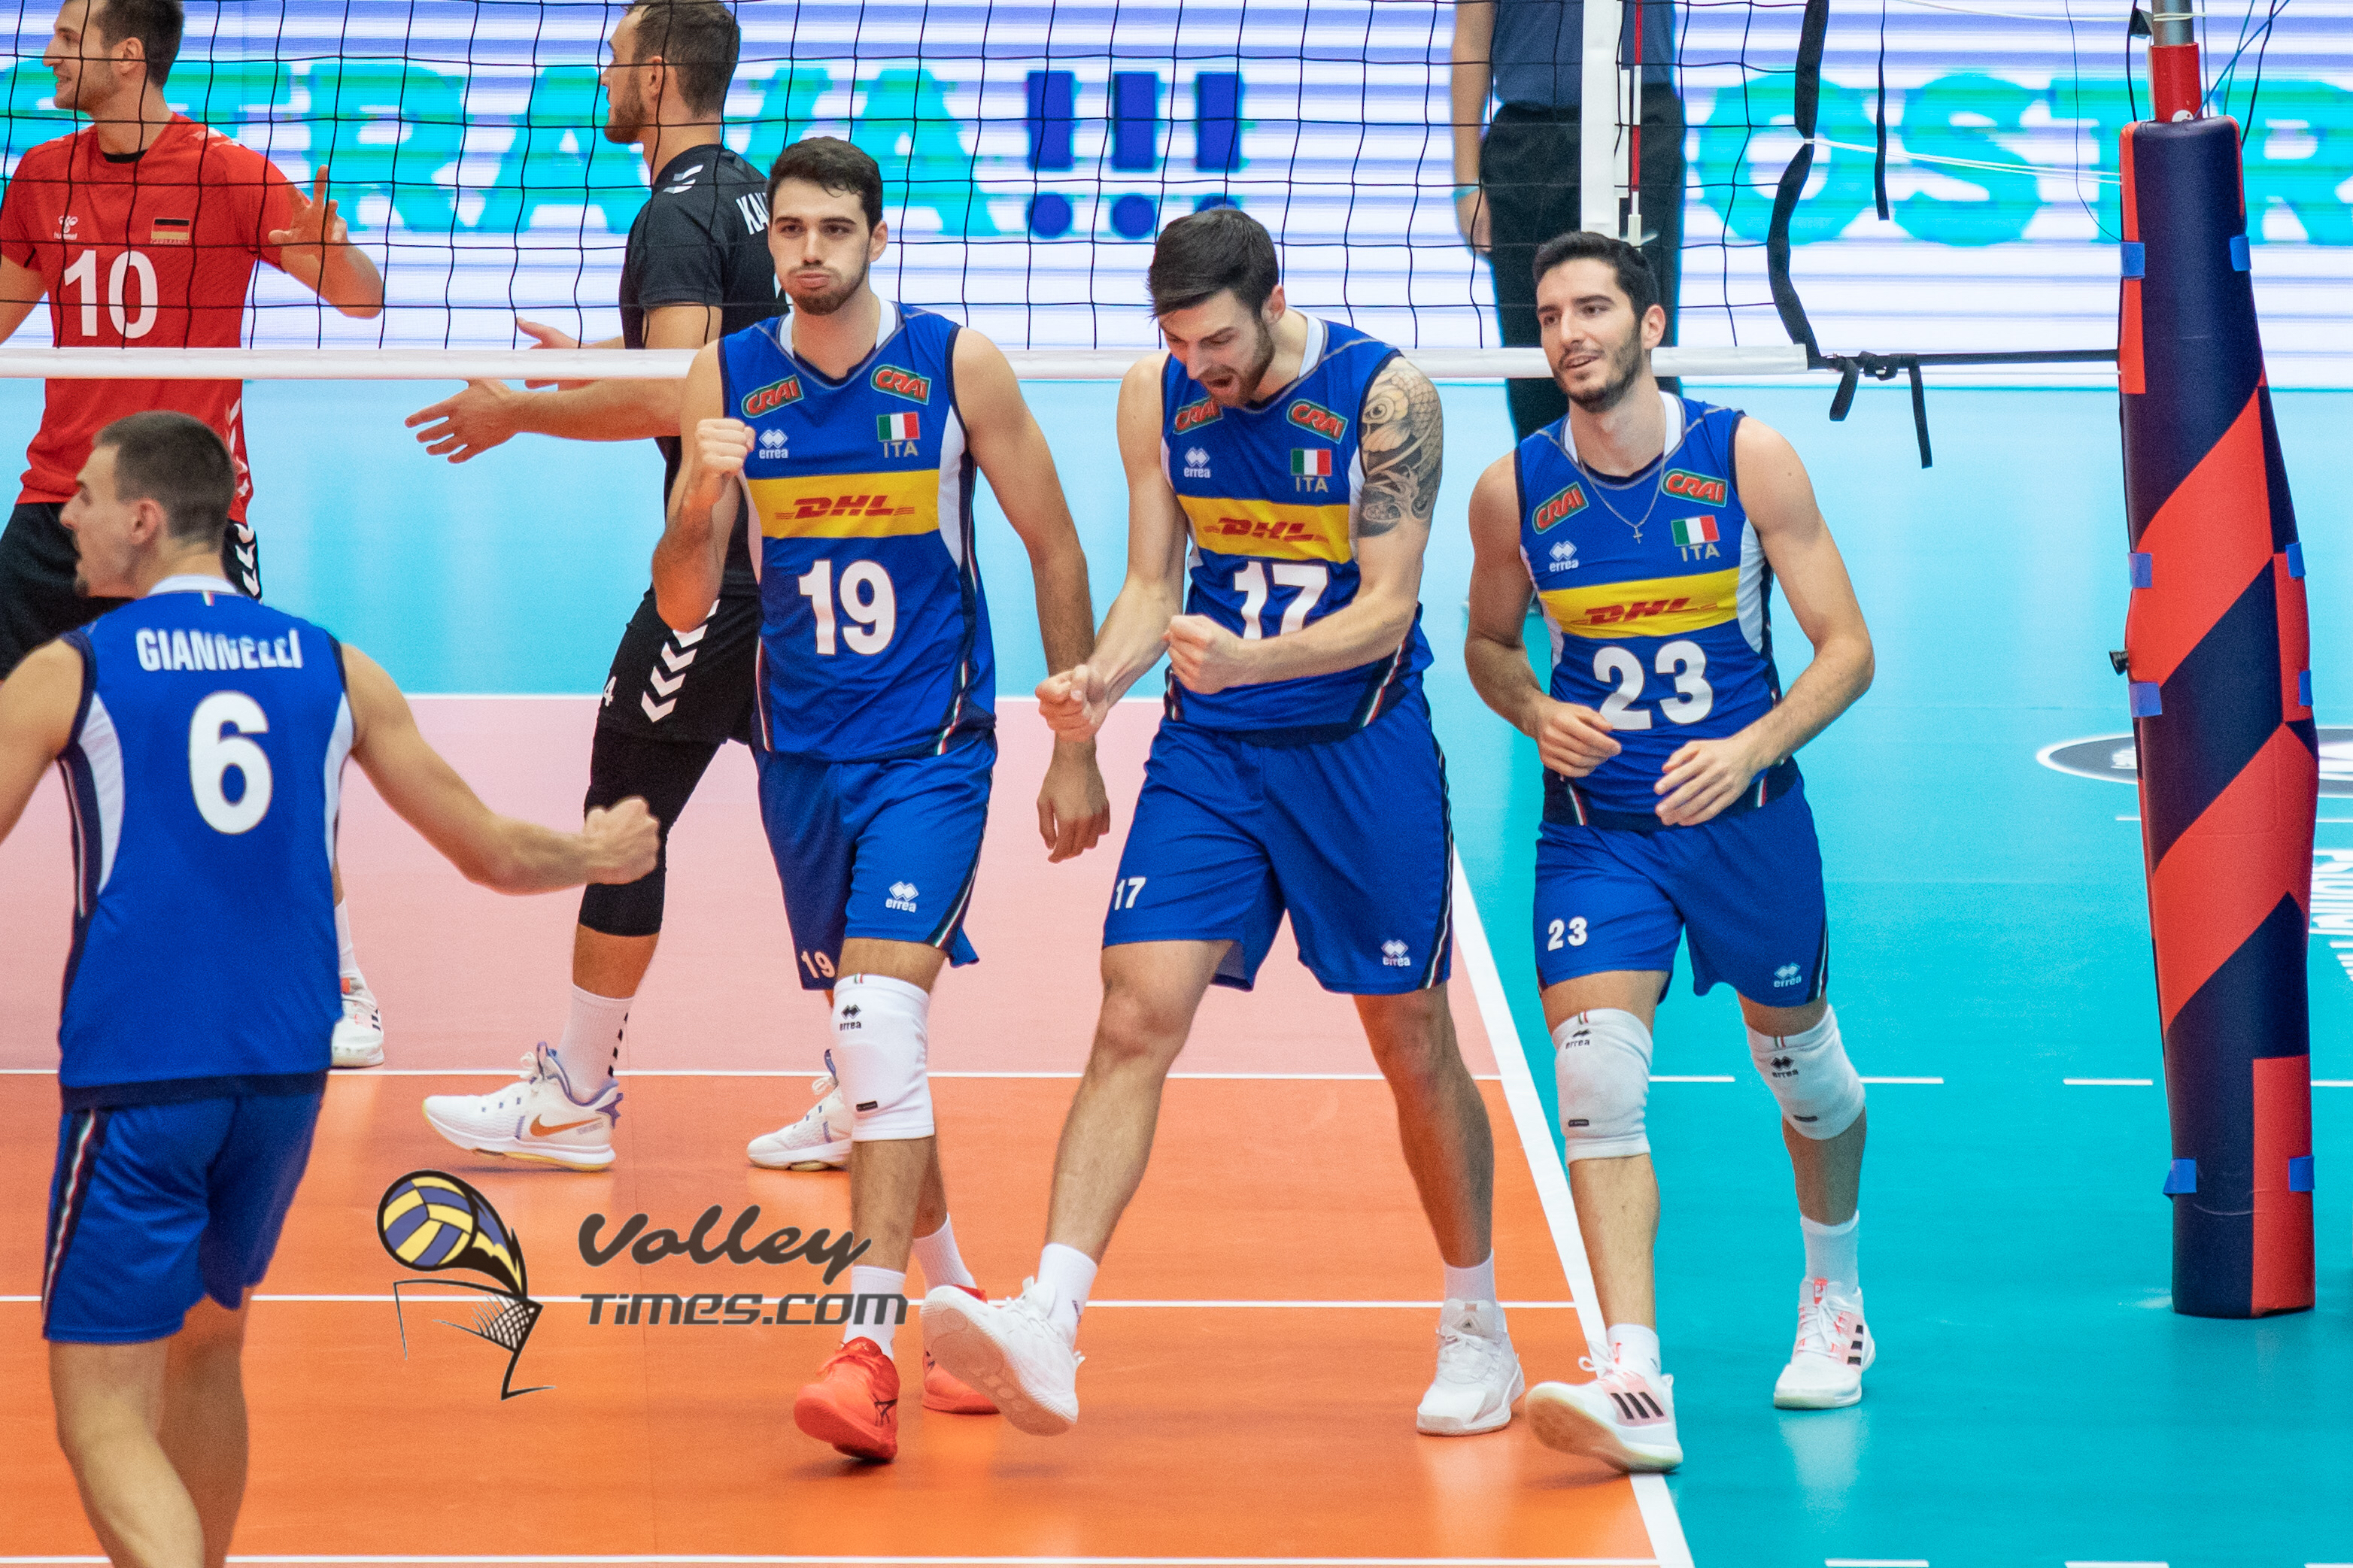 Eurovolley 2021: Italy wrecked an unrecognizable Germany to claim a spot in semifinal. Slovenia last semifinalist!